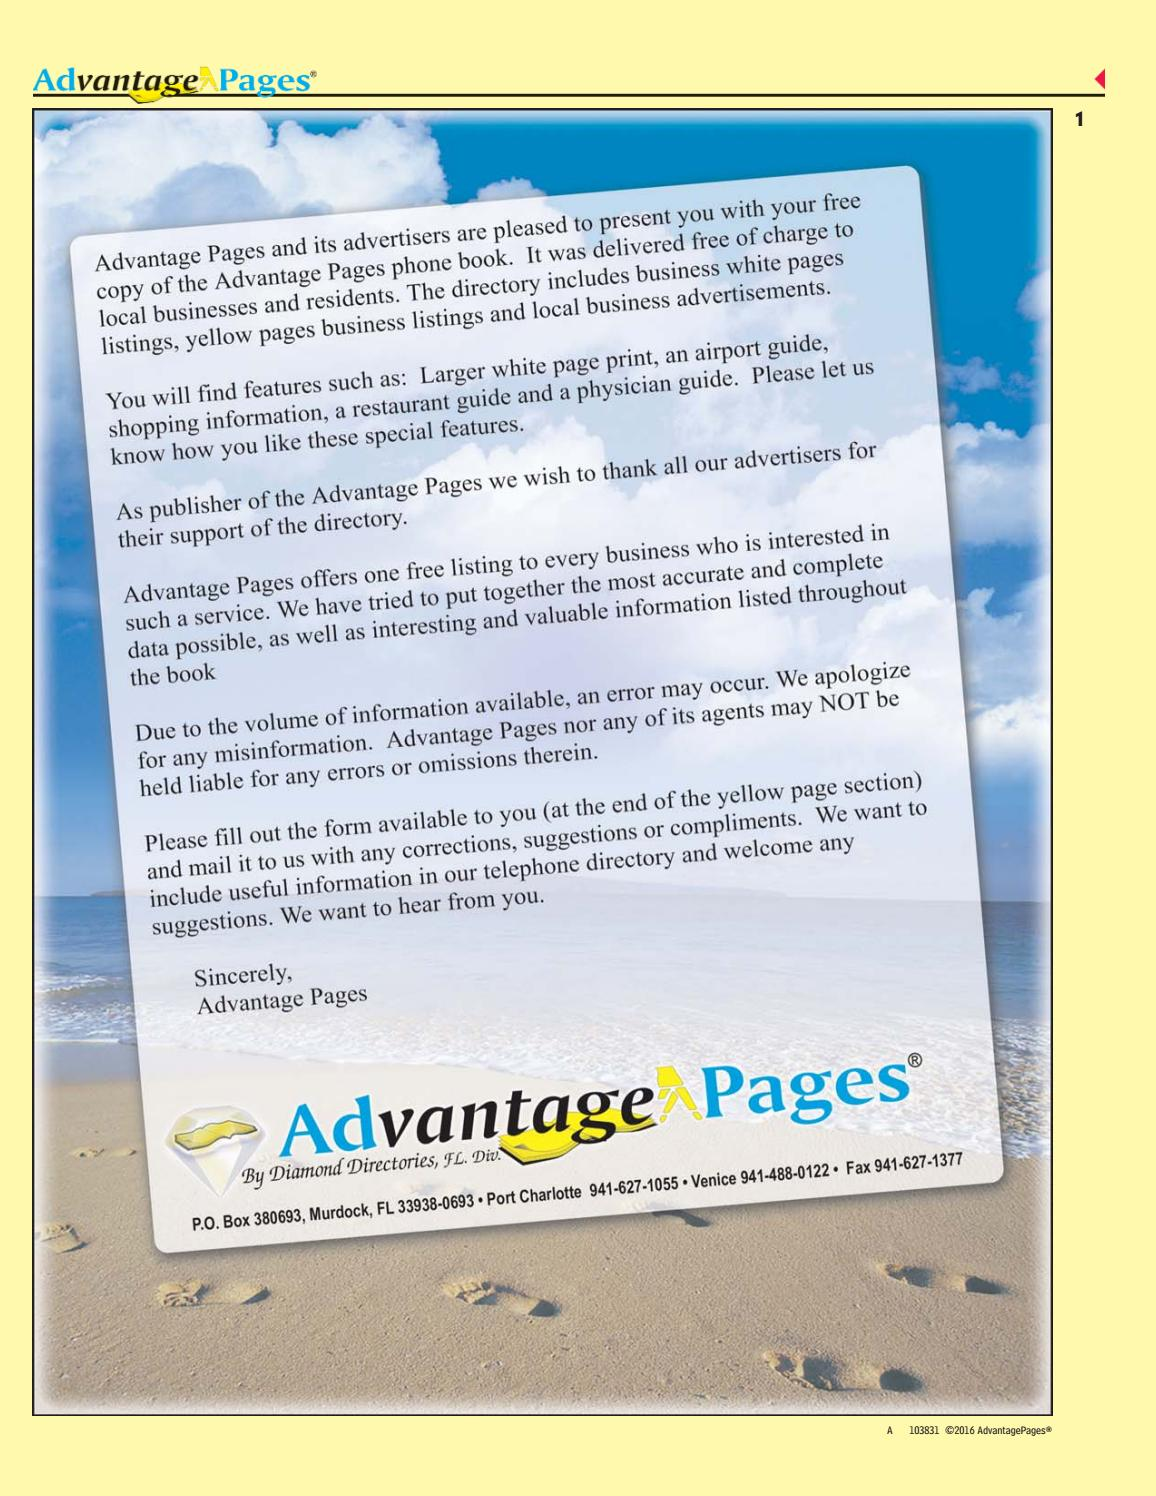 Ambiance Carrelage Saint Leonard advantage pagesadvantage pages, large print phone book